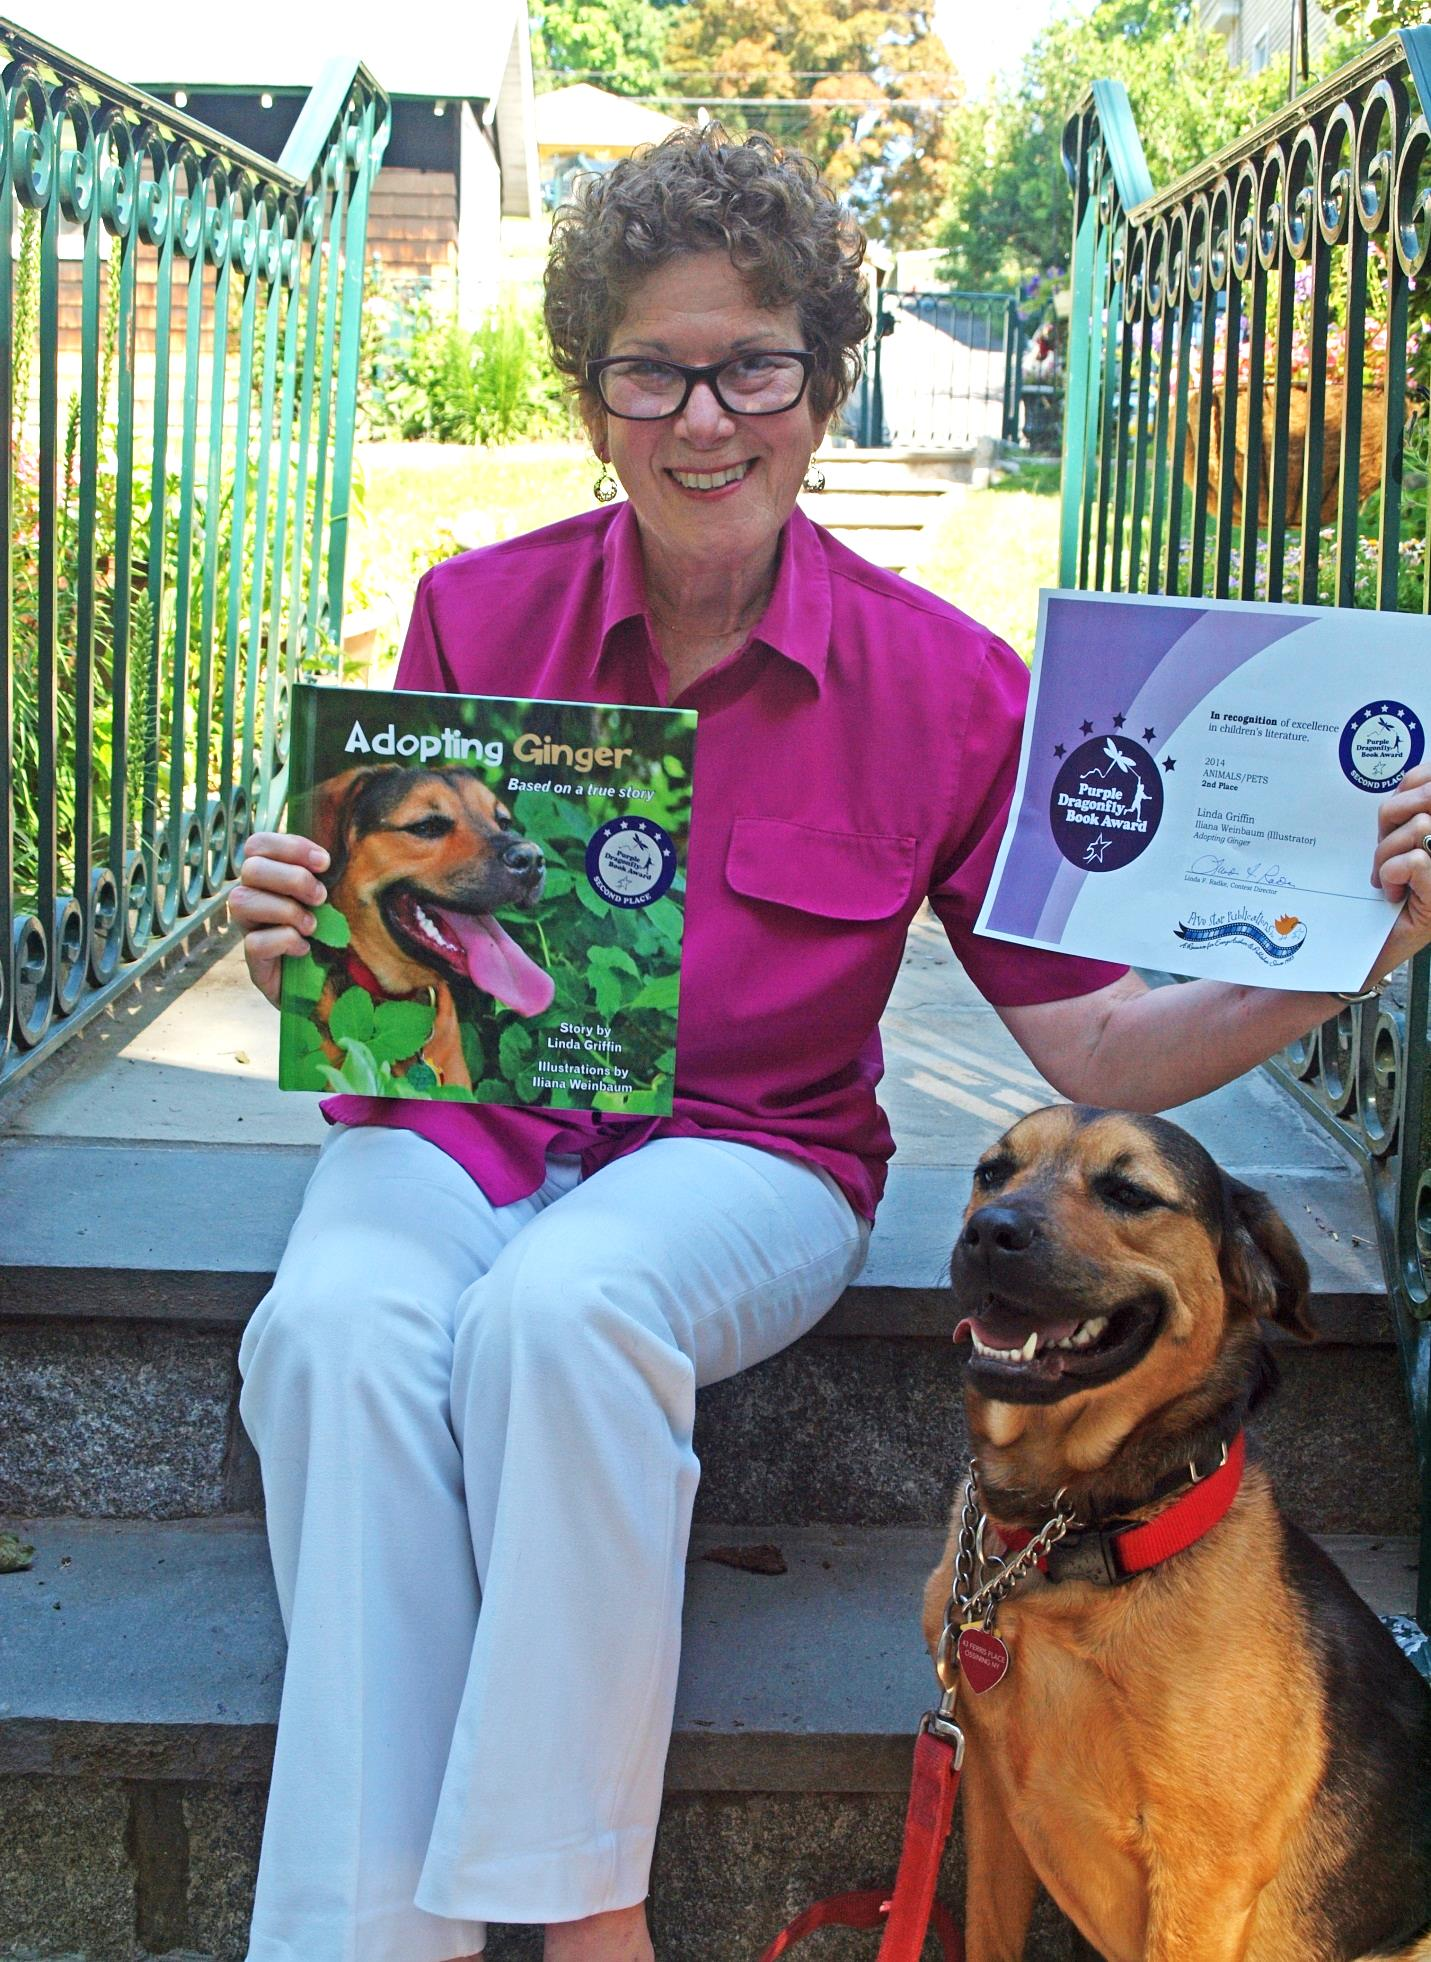 Linda Griffin poses with Ginger, the subject of her award winning book.